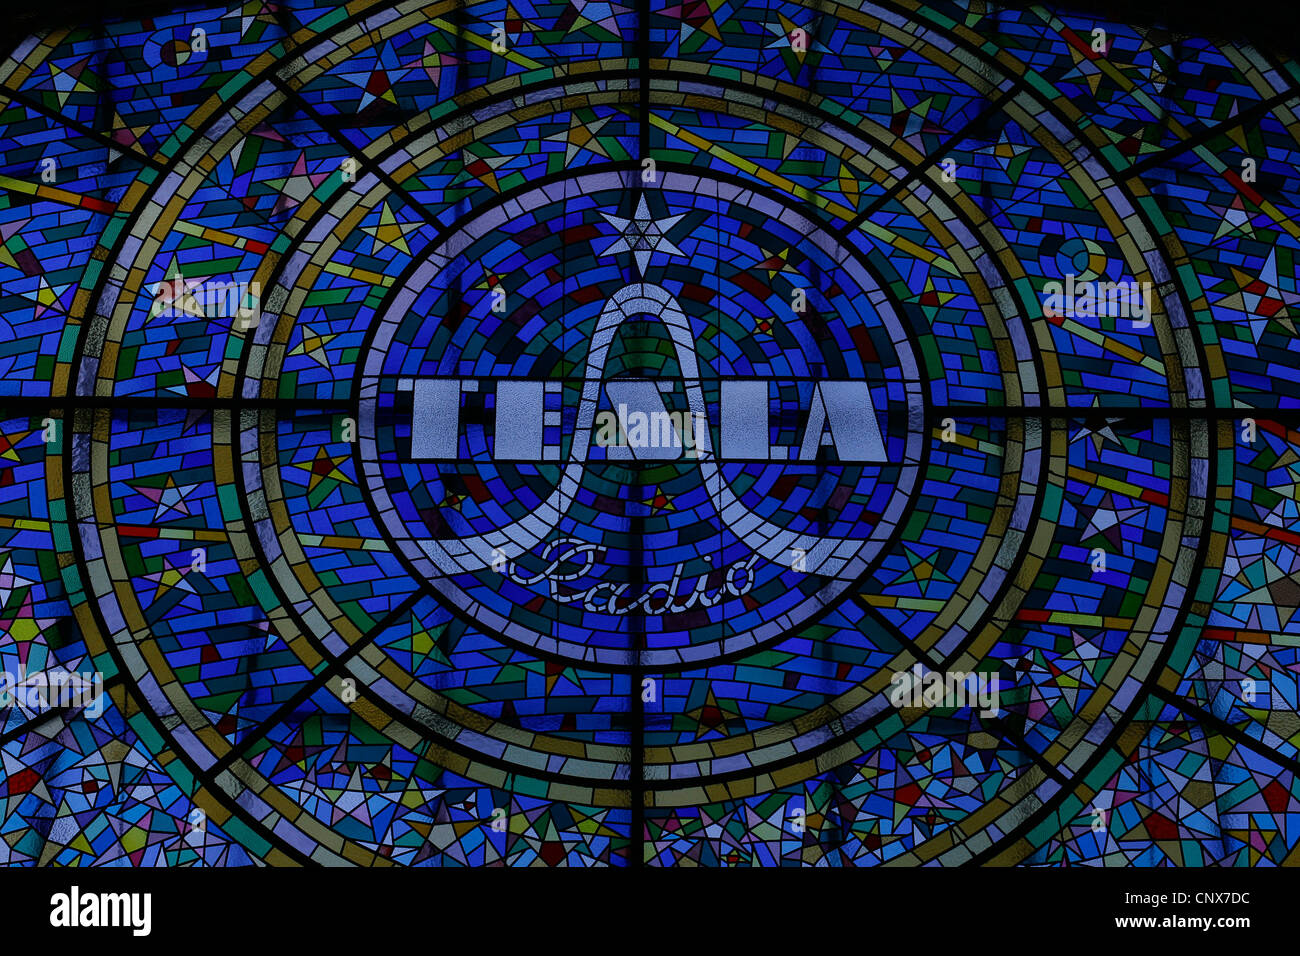 Stained glass with the logo of tesla radio in the passage svtozor stained glass with the logo of tesla radio in the passage svtozor in nov msto prague czech republic buycottarizona Gallery